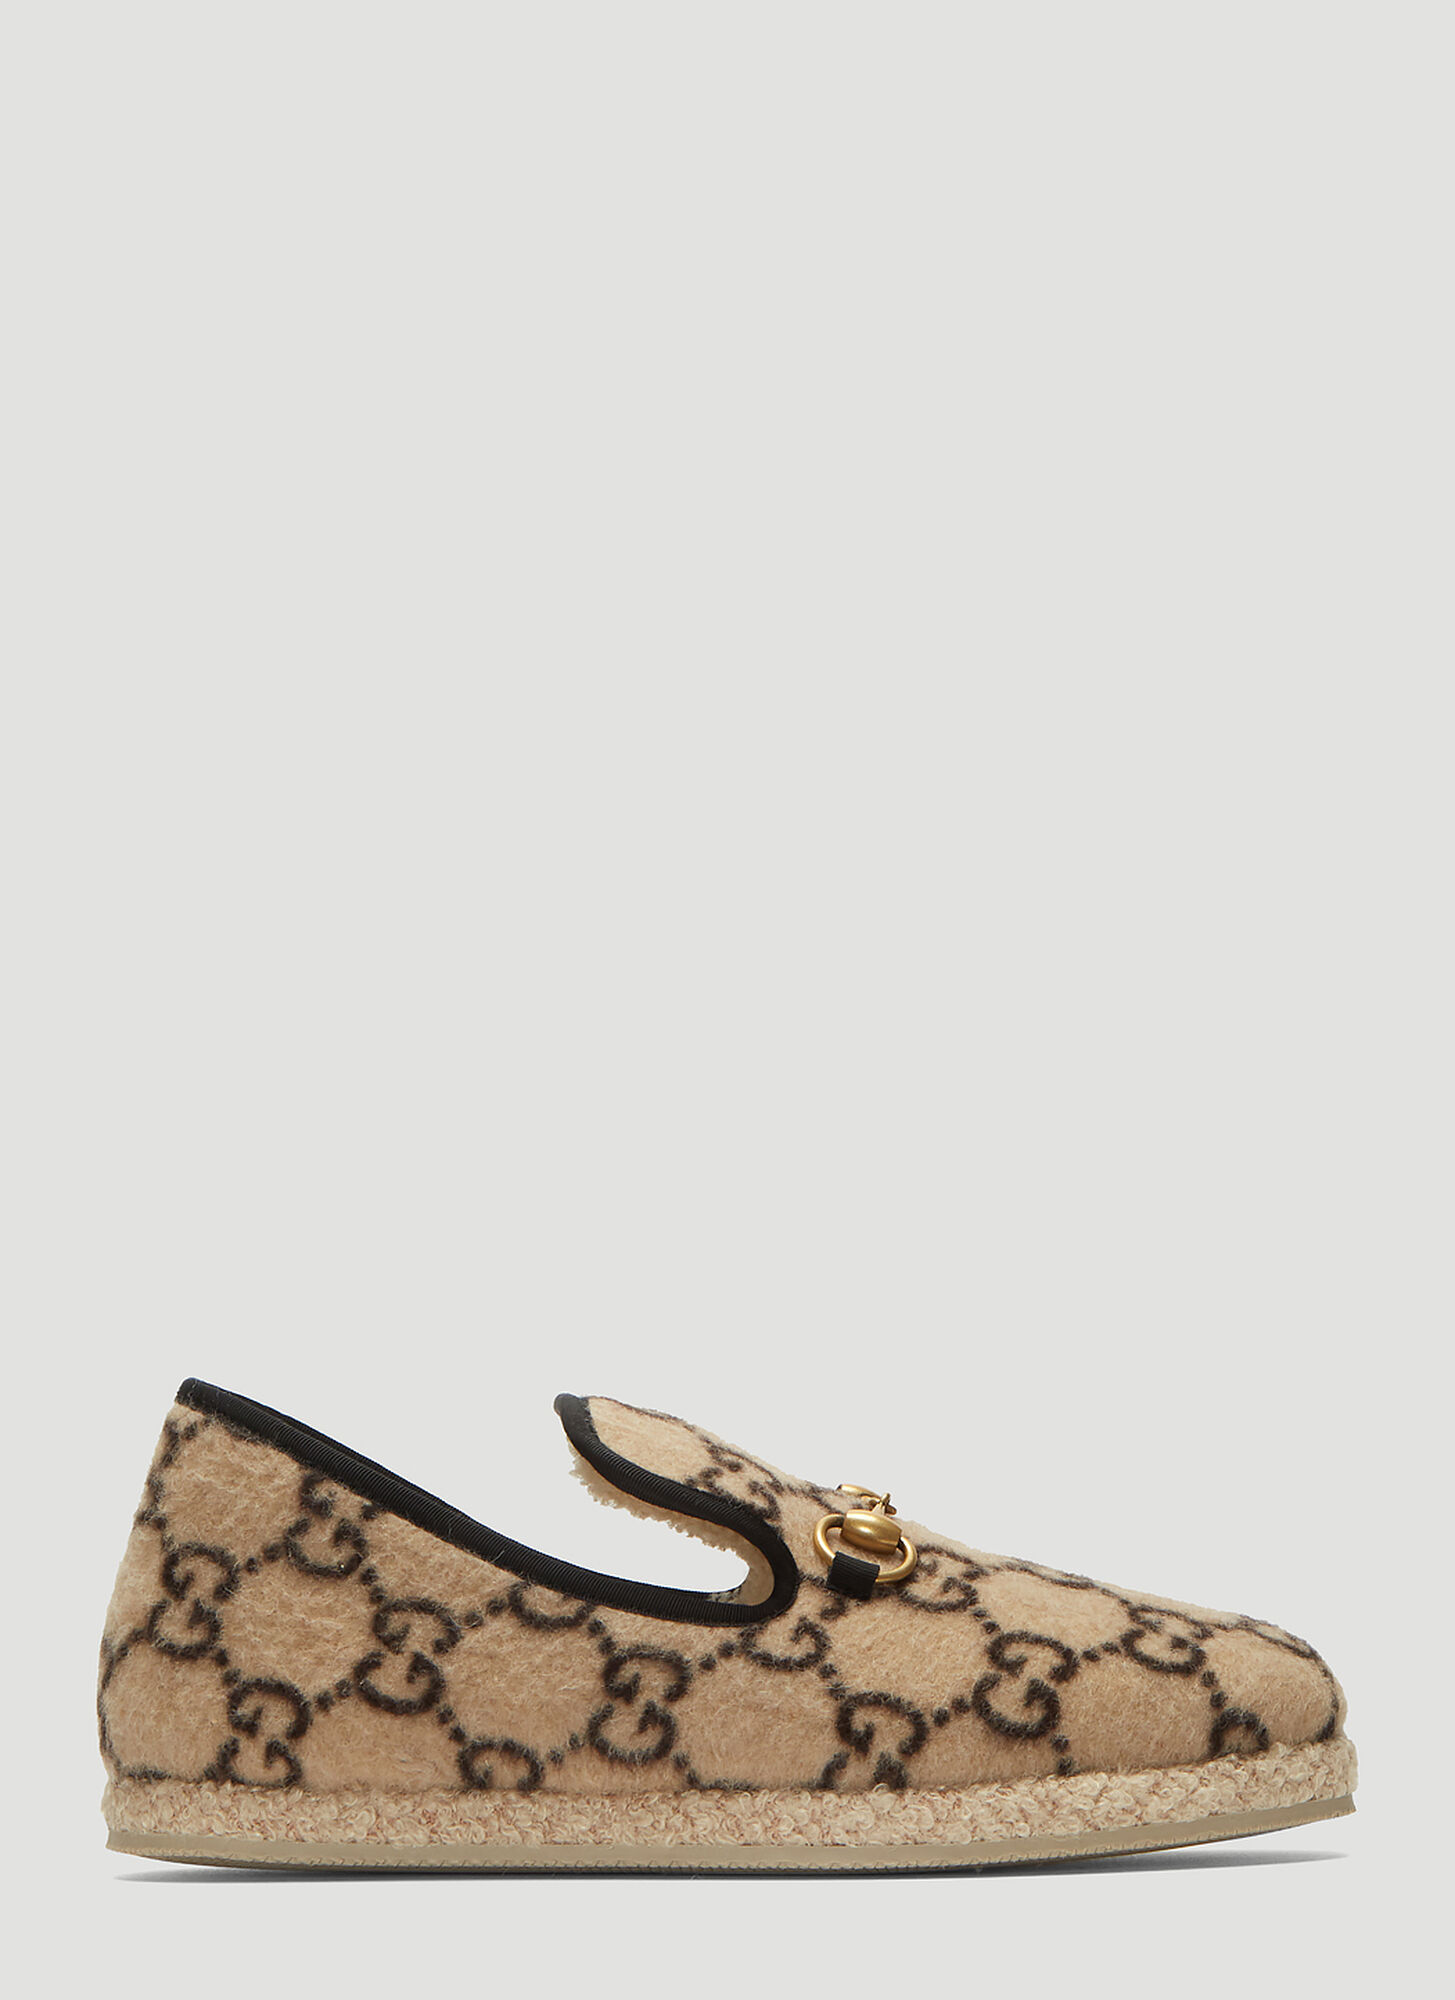 Gucci GG Wool Loafers in Beige